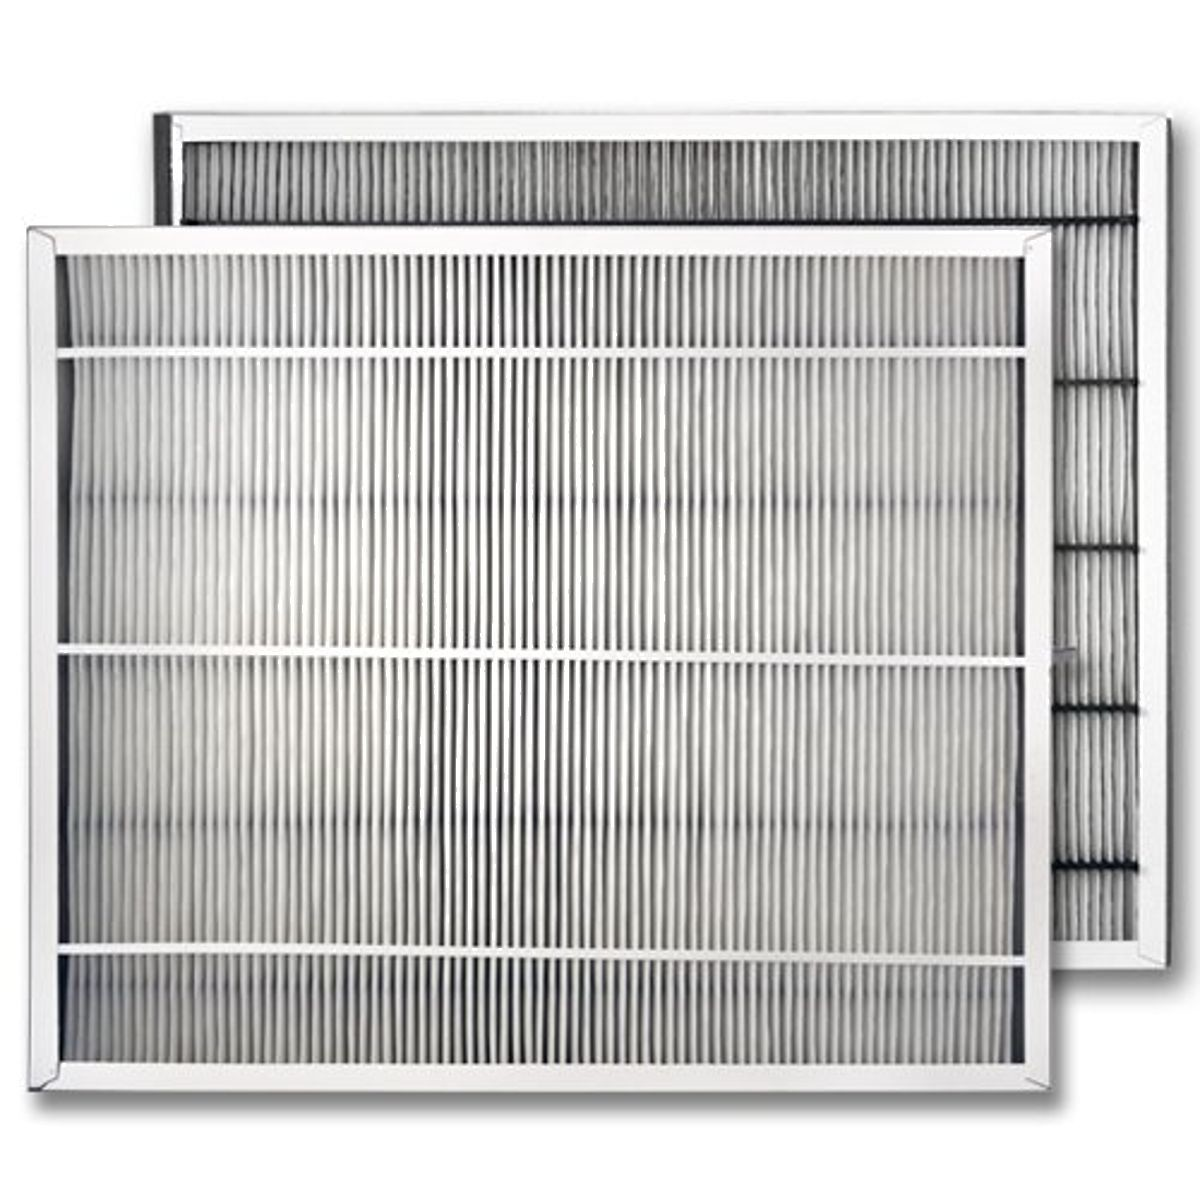 "Carrier® Infinity - GAPCCCAR1620 16"" x 20"" High Efficiency GAPA Replacement Filters for Fan Coils"